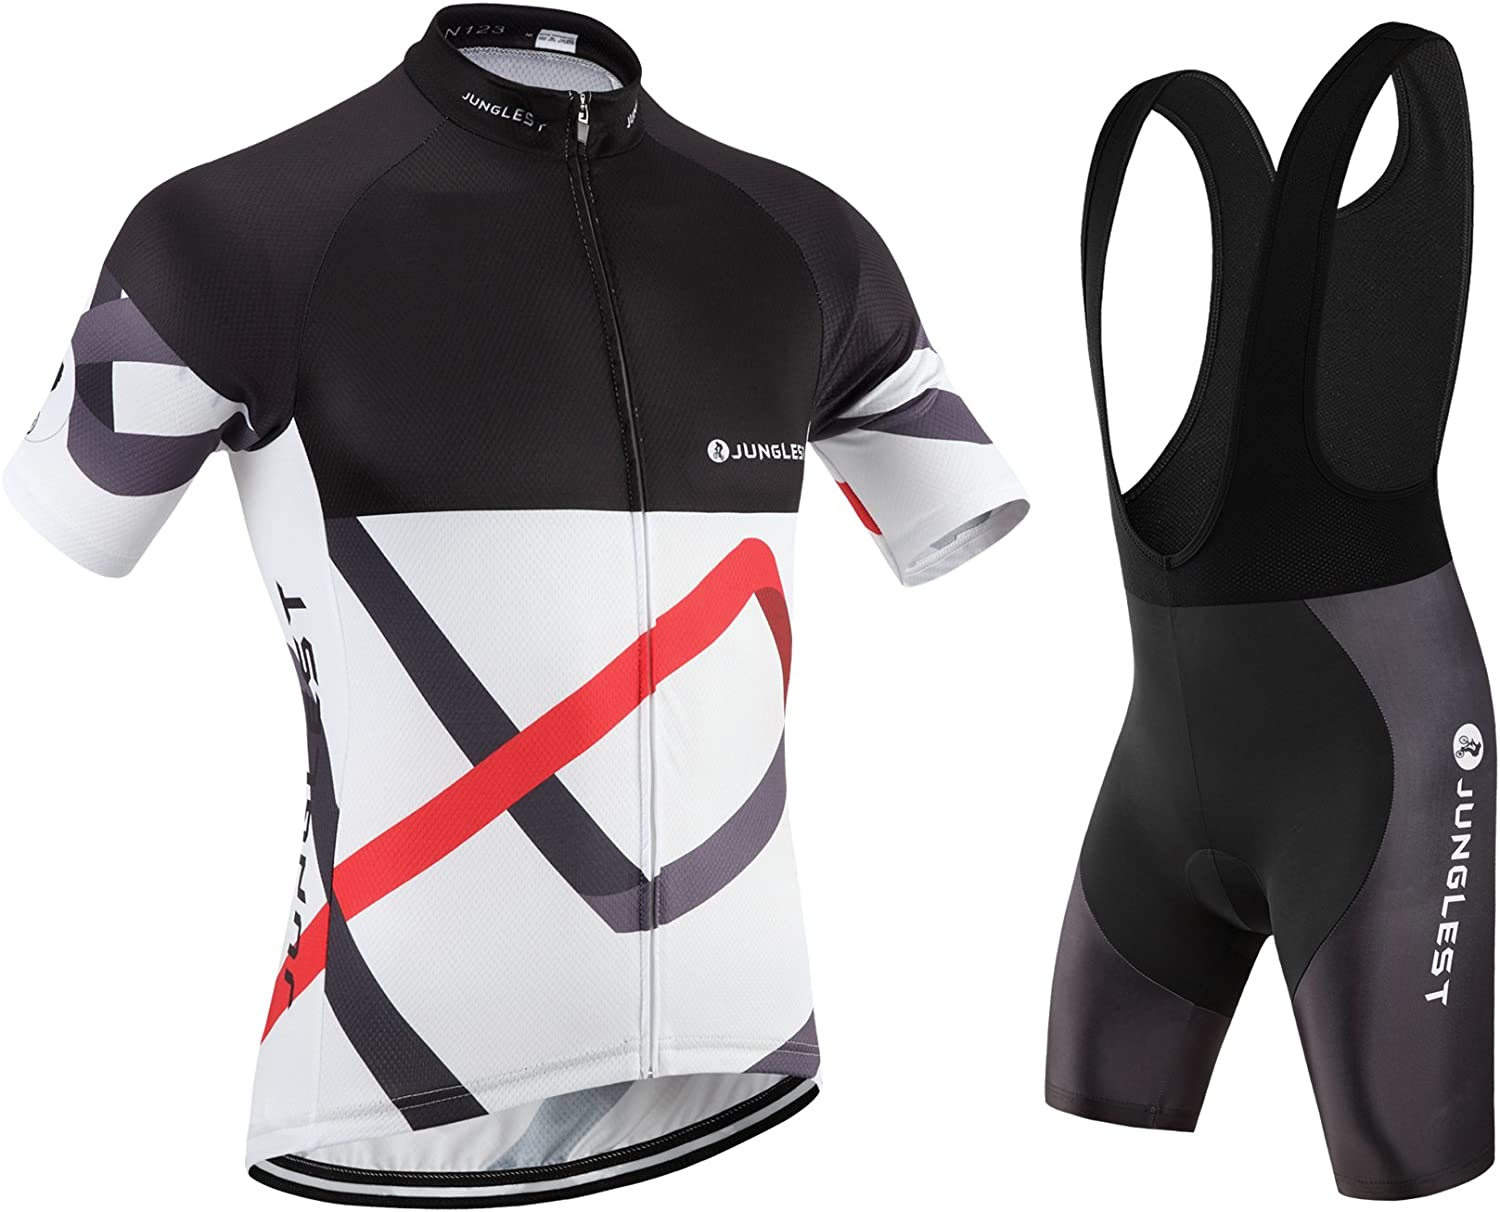 Cycling jersey Set, Maillot de Cyclisme Wen Homme Short sleeve Manches Courtes(S5XL,option bib Cuissard,3D pad Coussin) N123